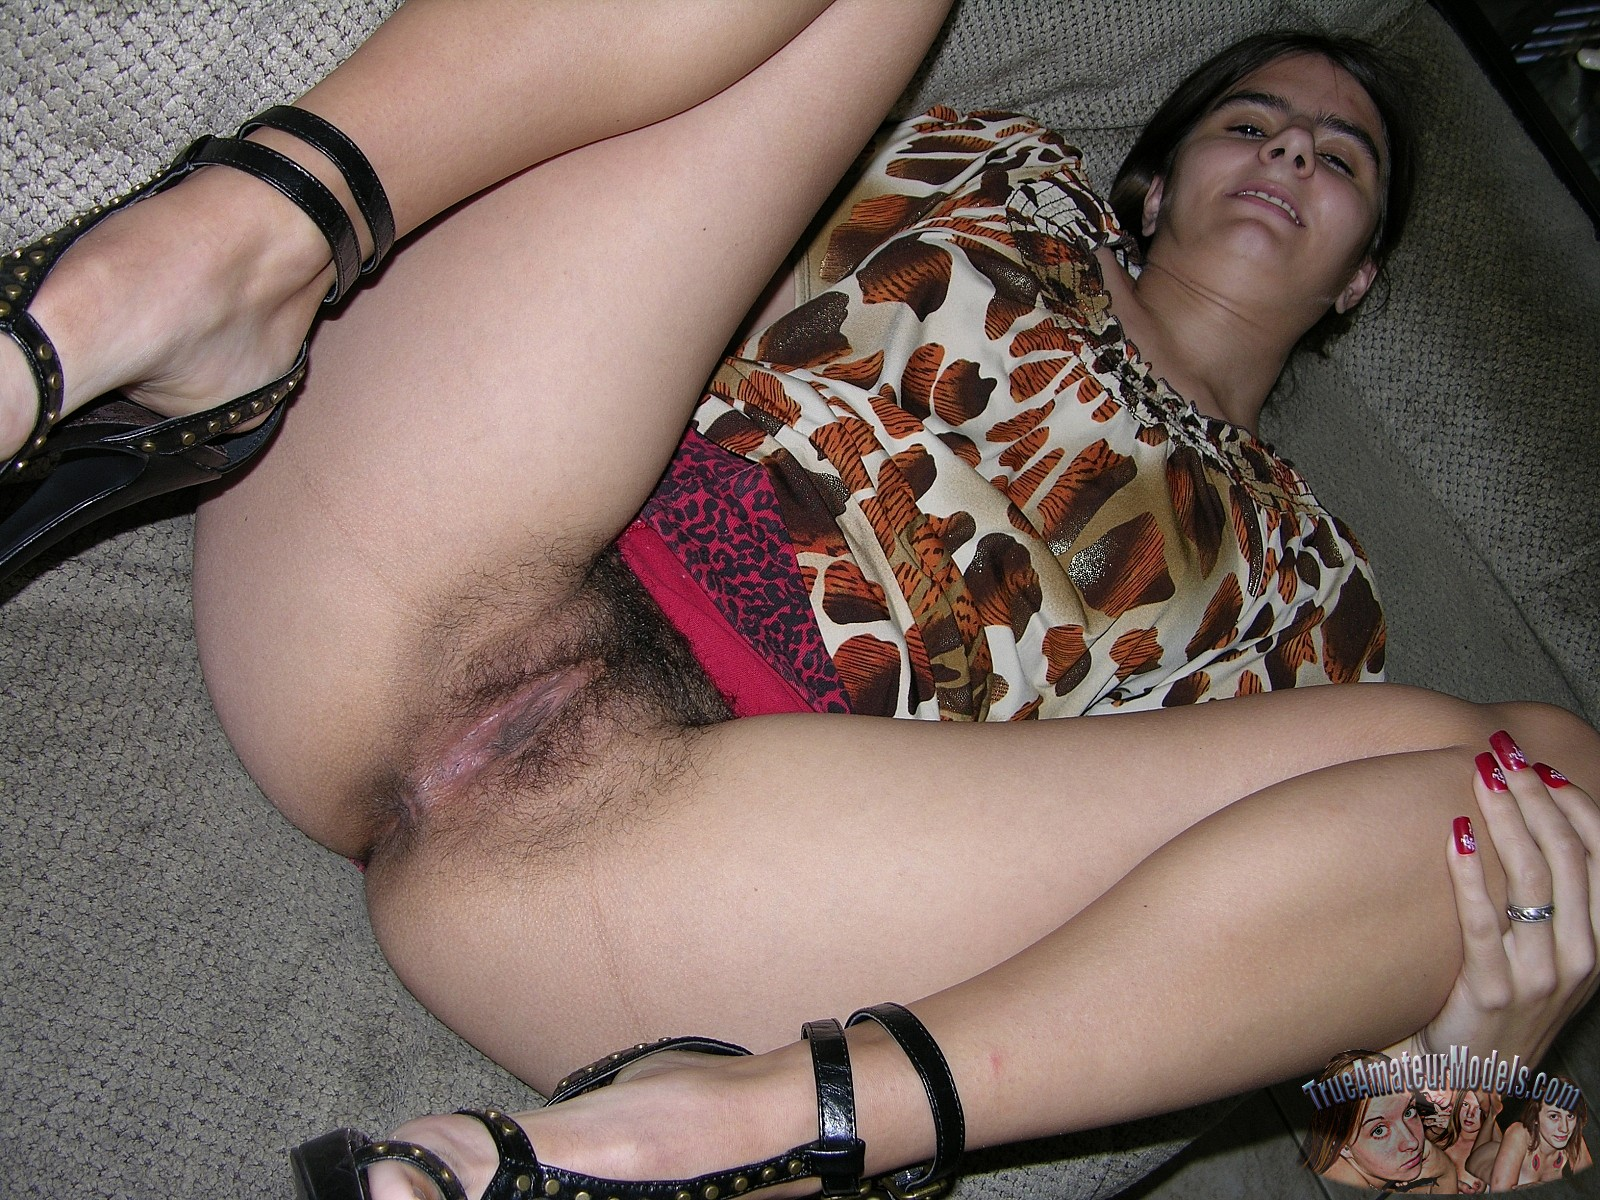 Hairy home nude girls pussy alone